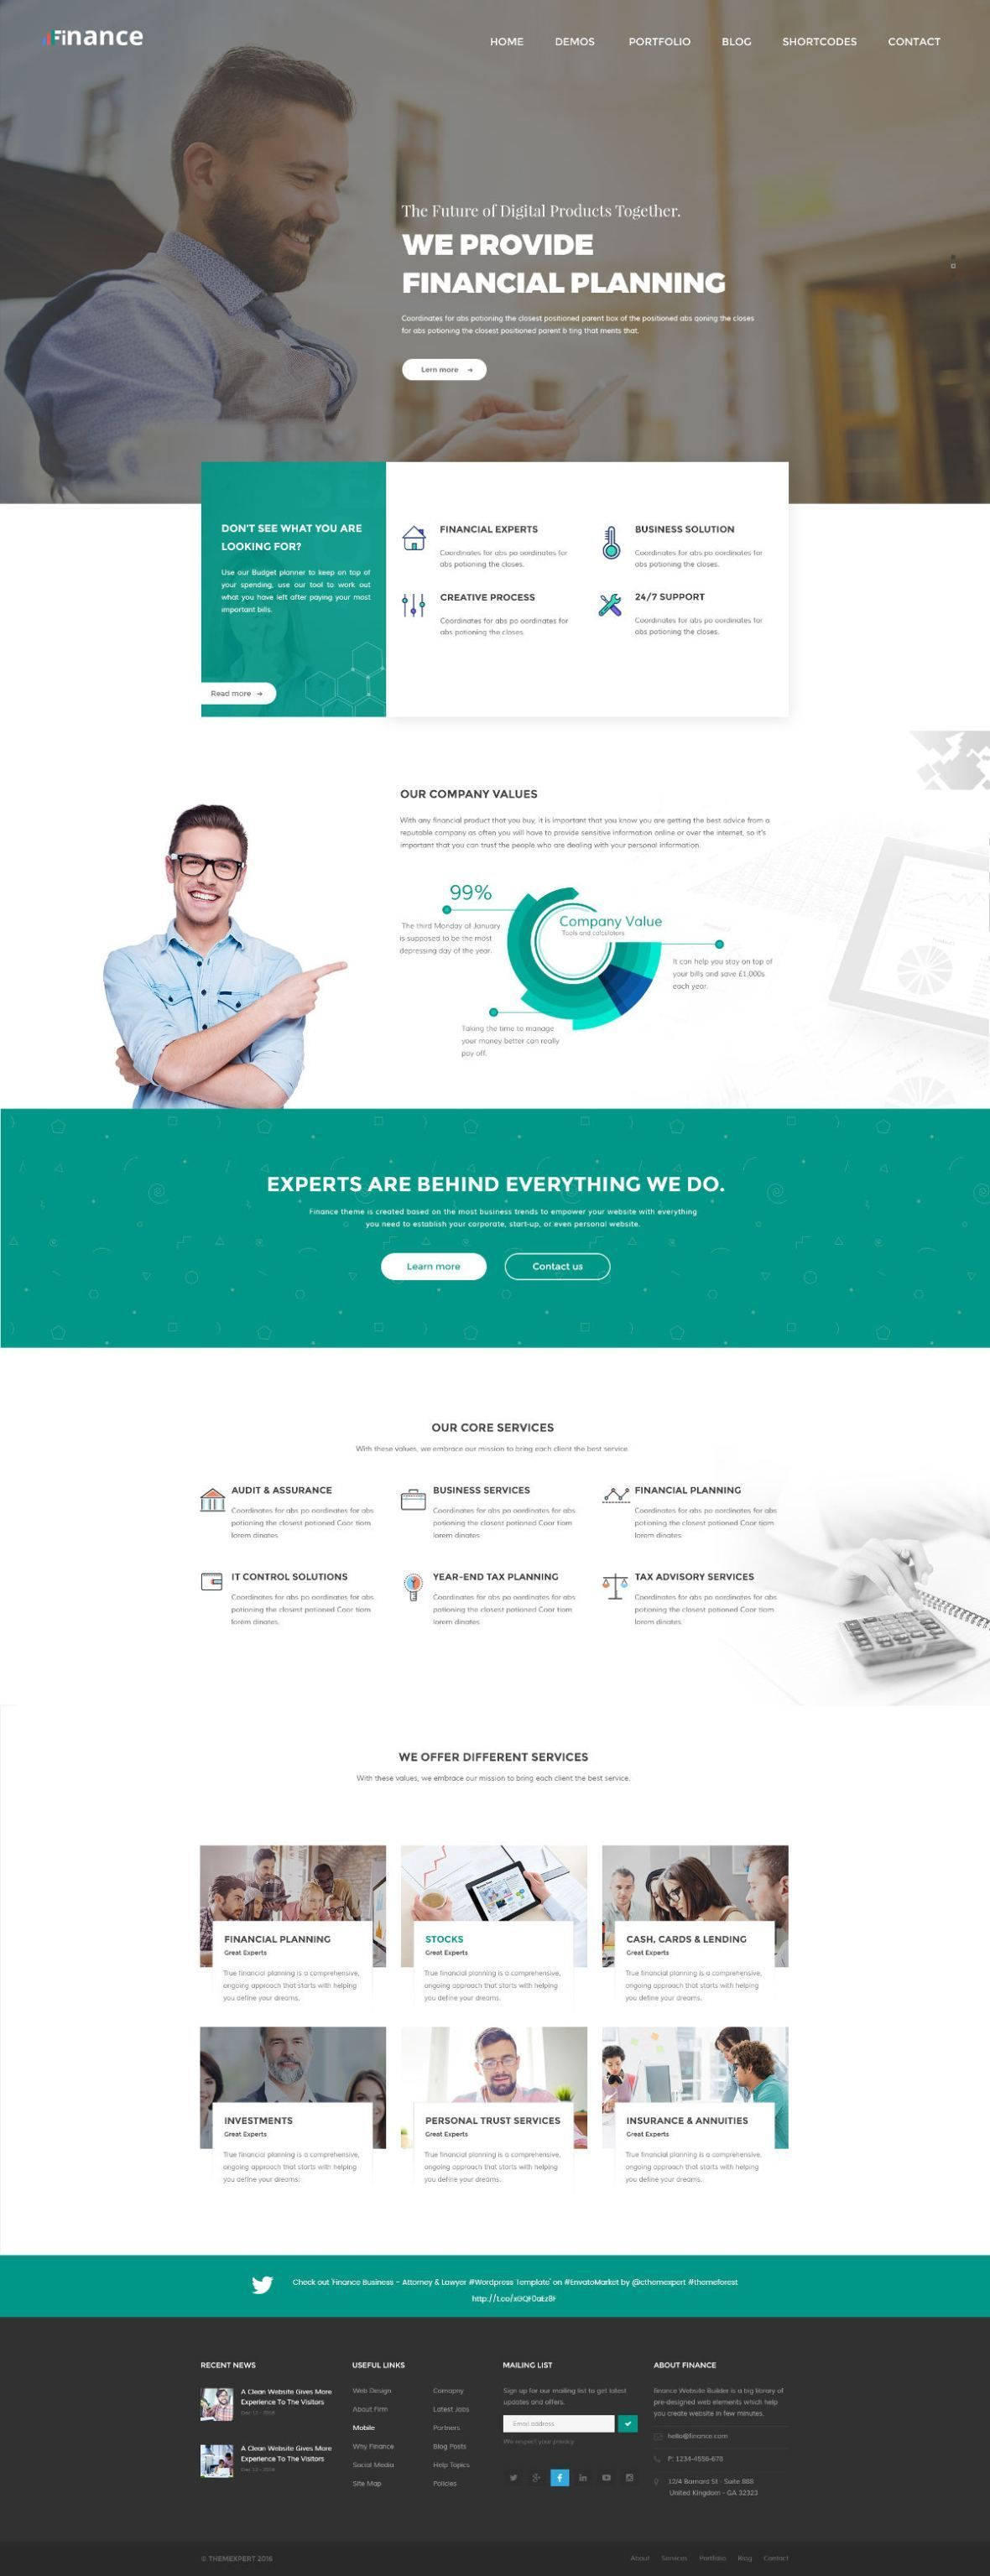 Finance Consulting Business Website Template Psd Business Website Templates In 2020 Business Website Templates Business Web Design Corporate Website Design